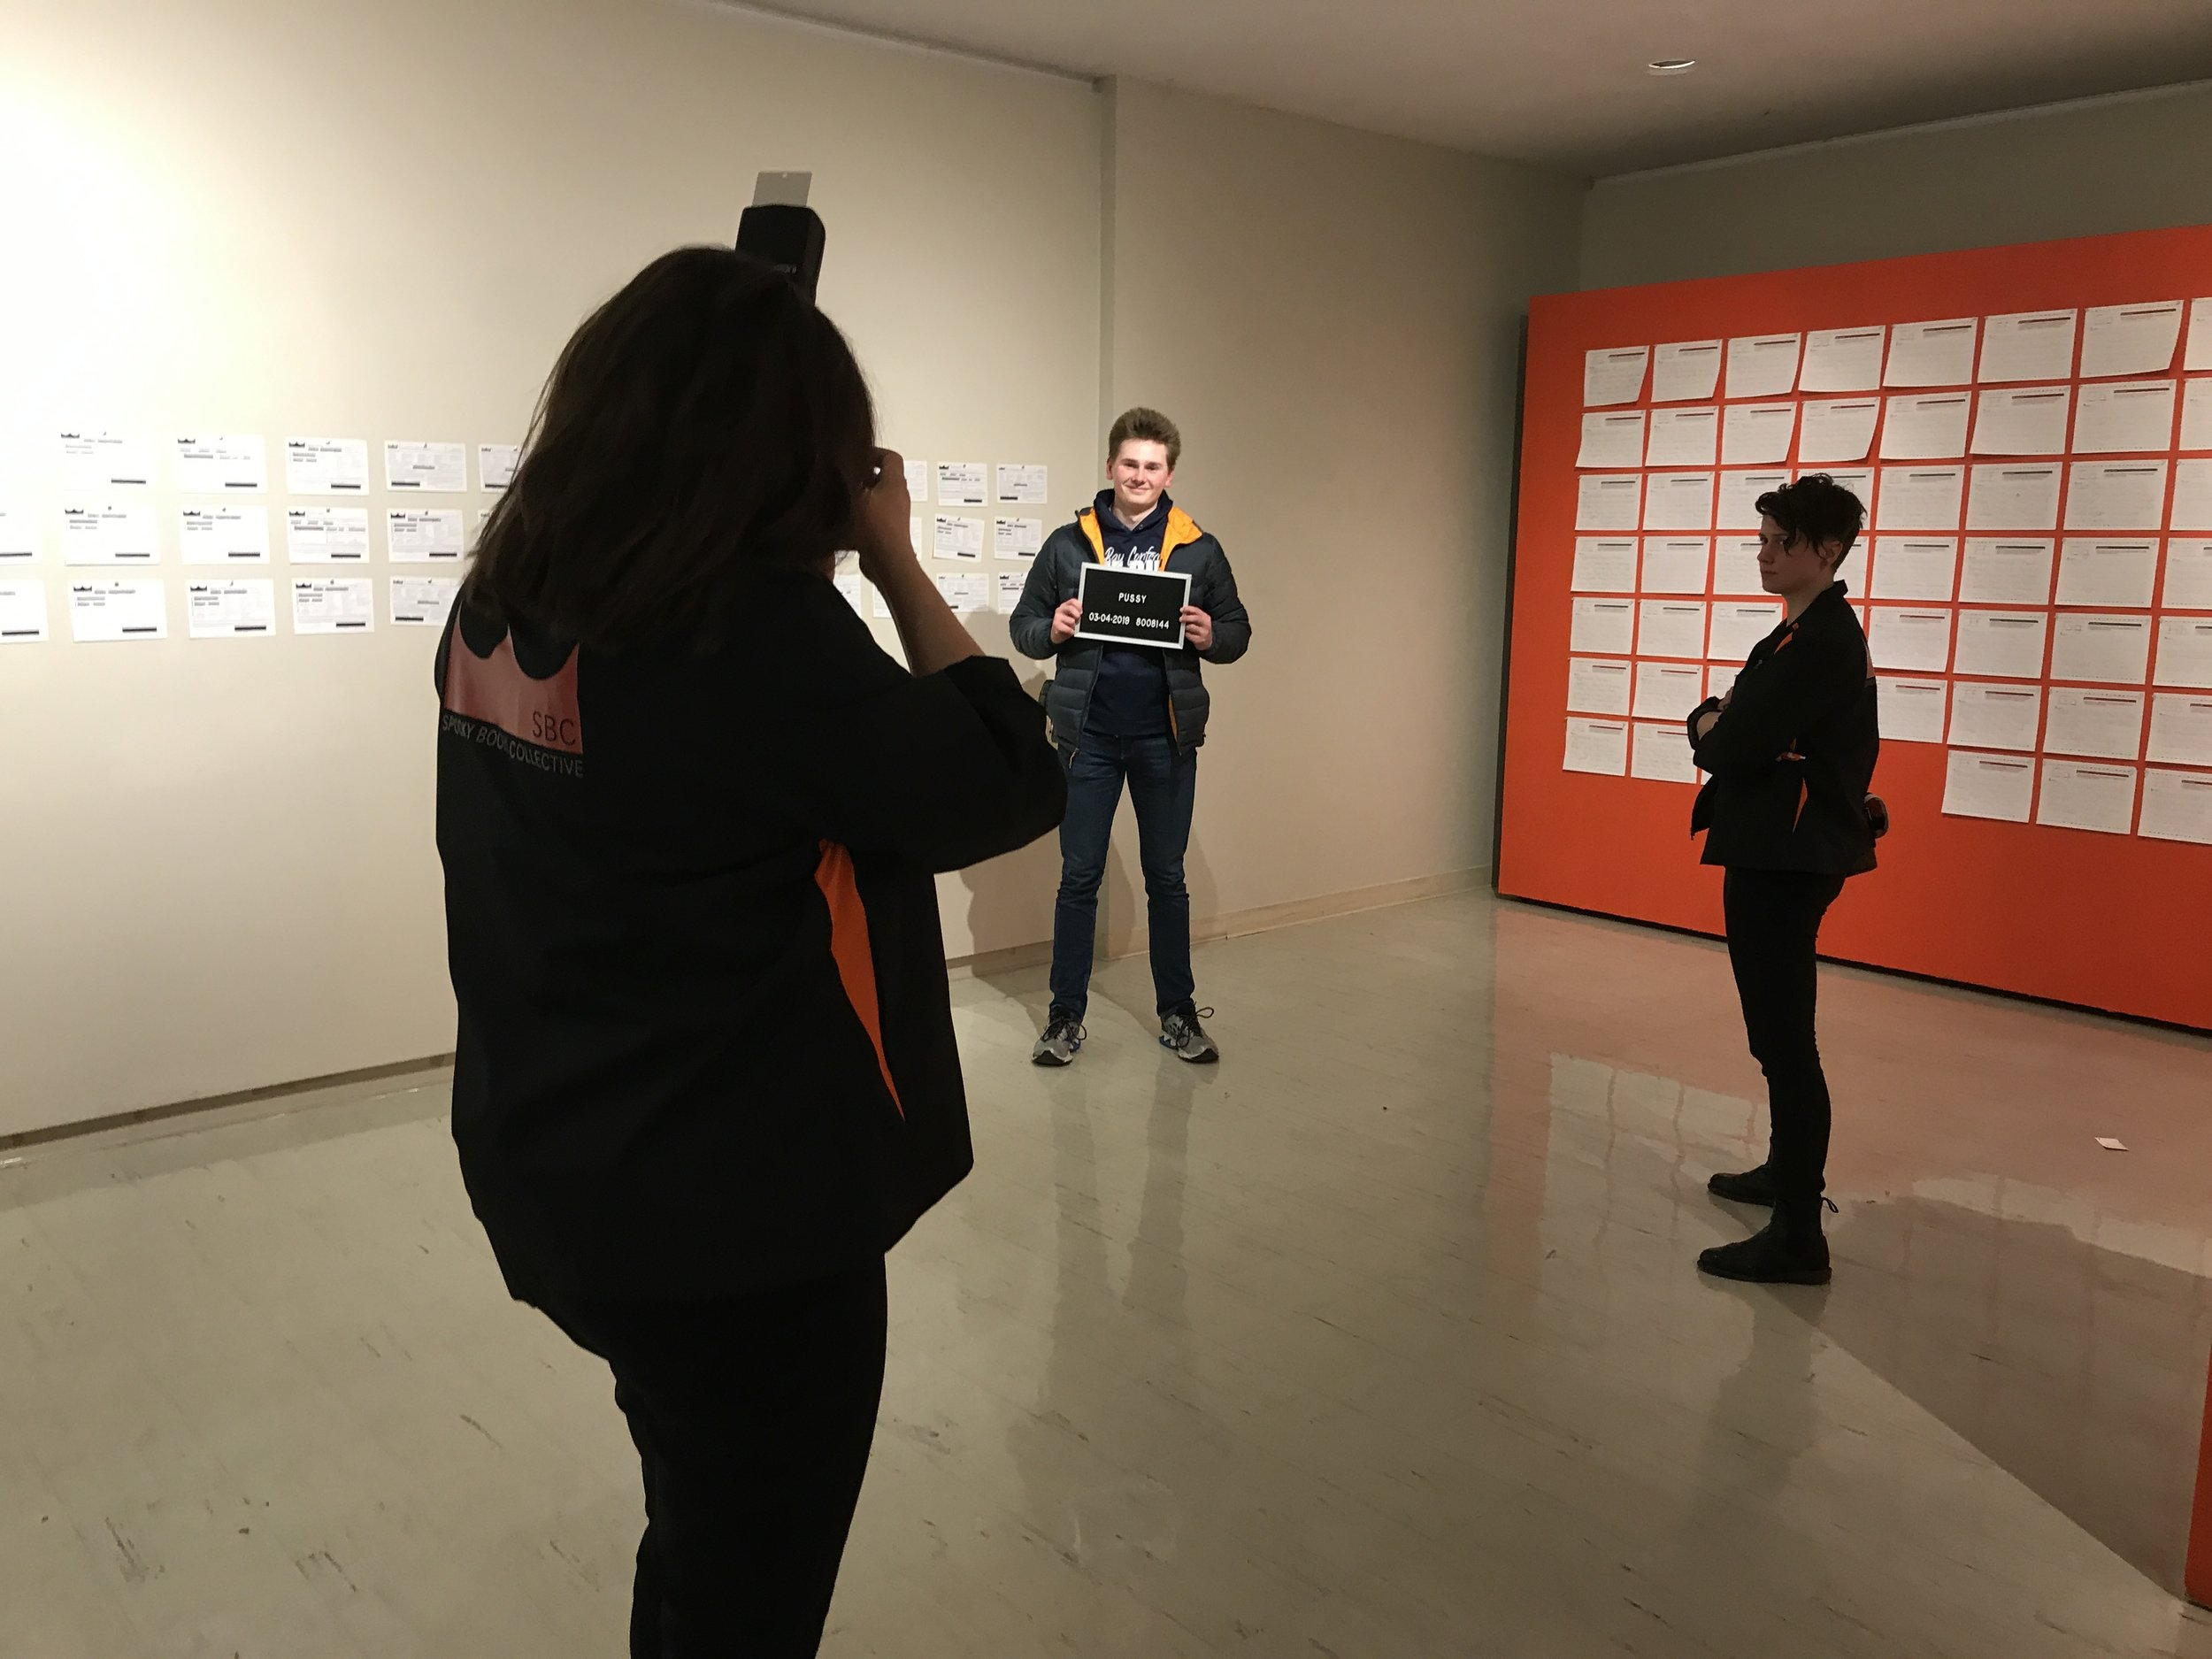 Documentation of performance during our solo exhibition  The Pervasive Curse  at the University of Wisconsin-Whitewater's Crossman Gallery in Spring 2019.